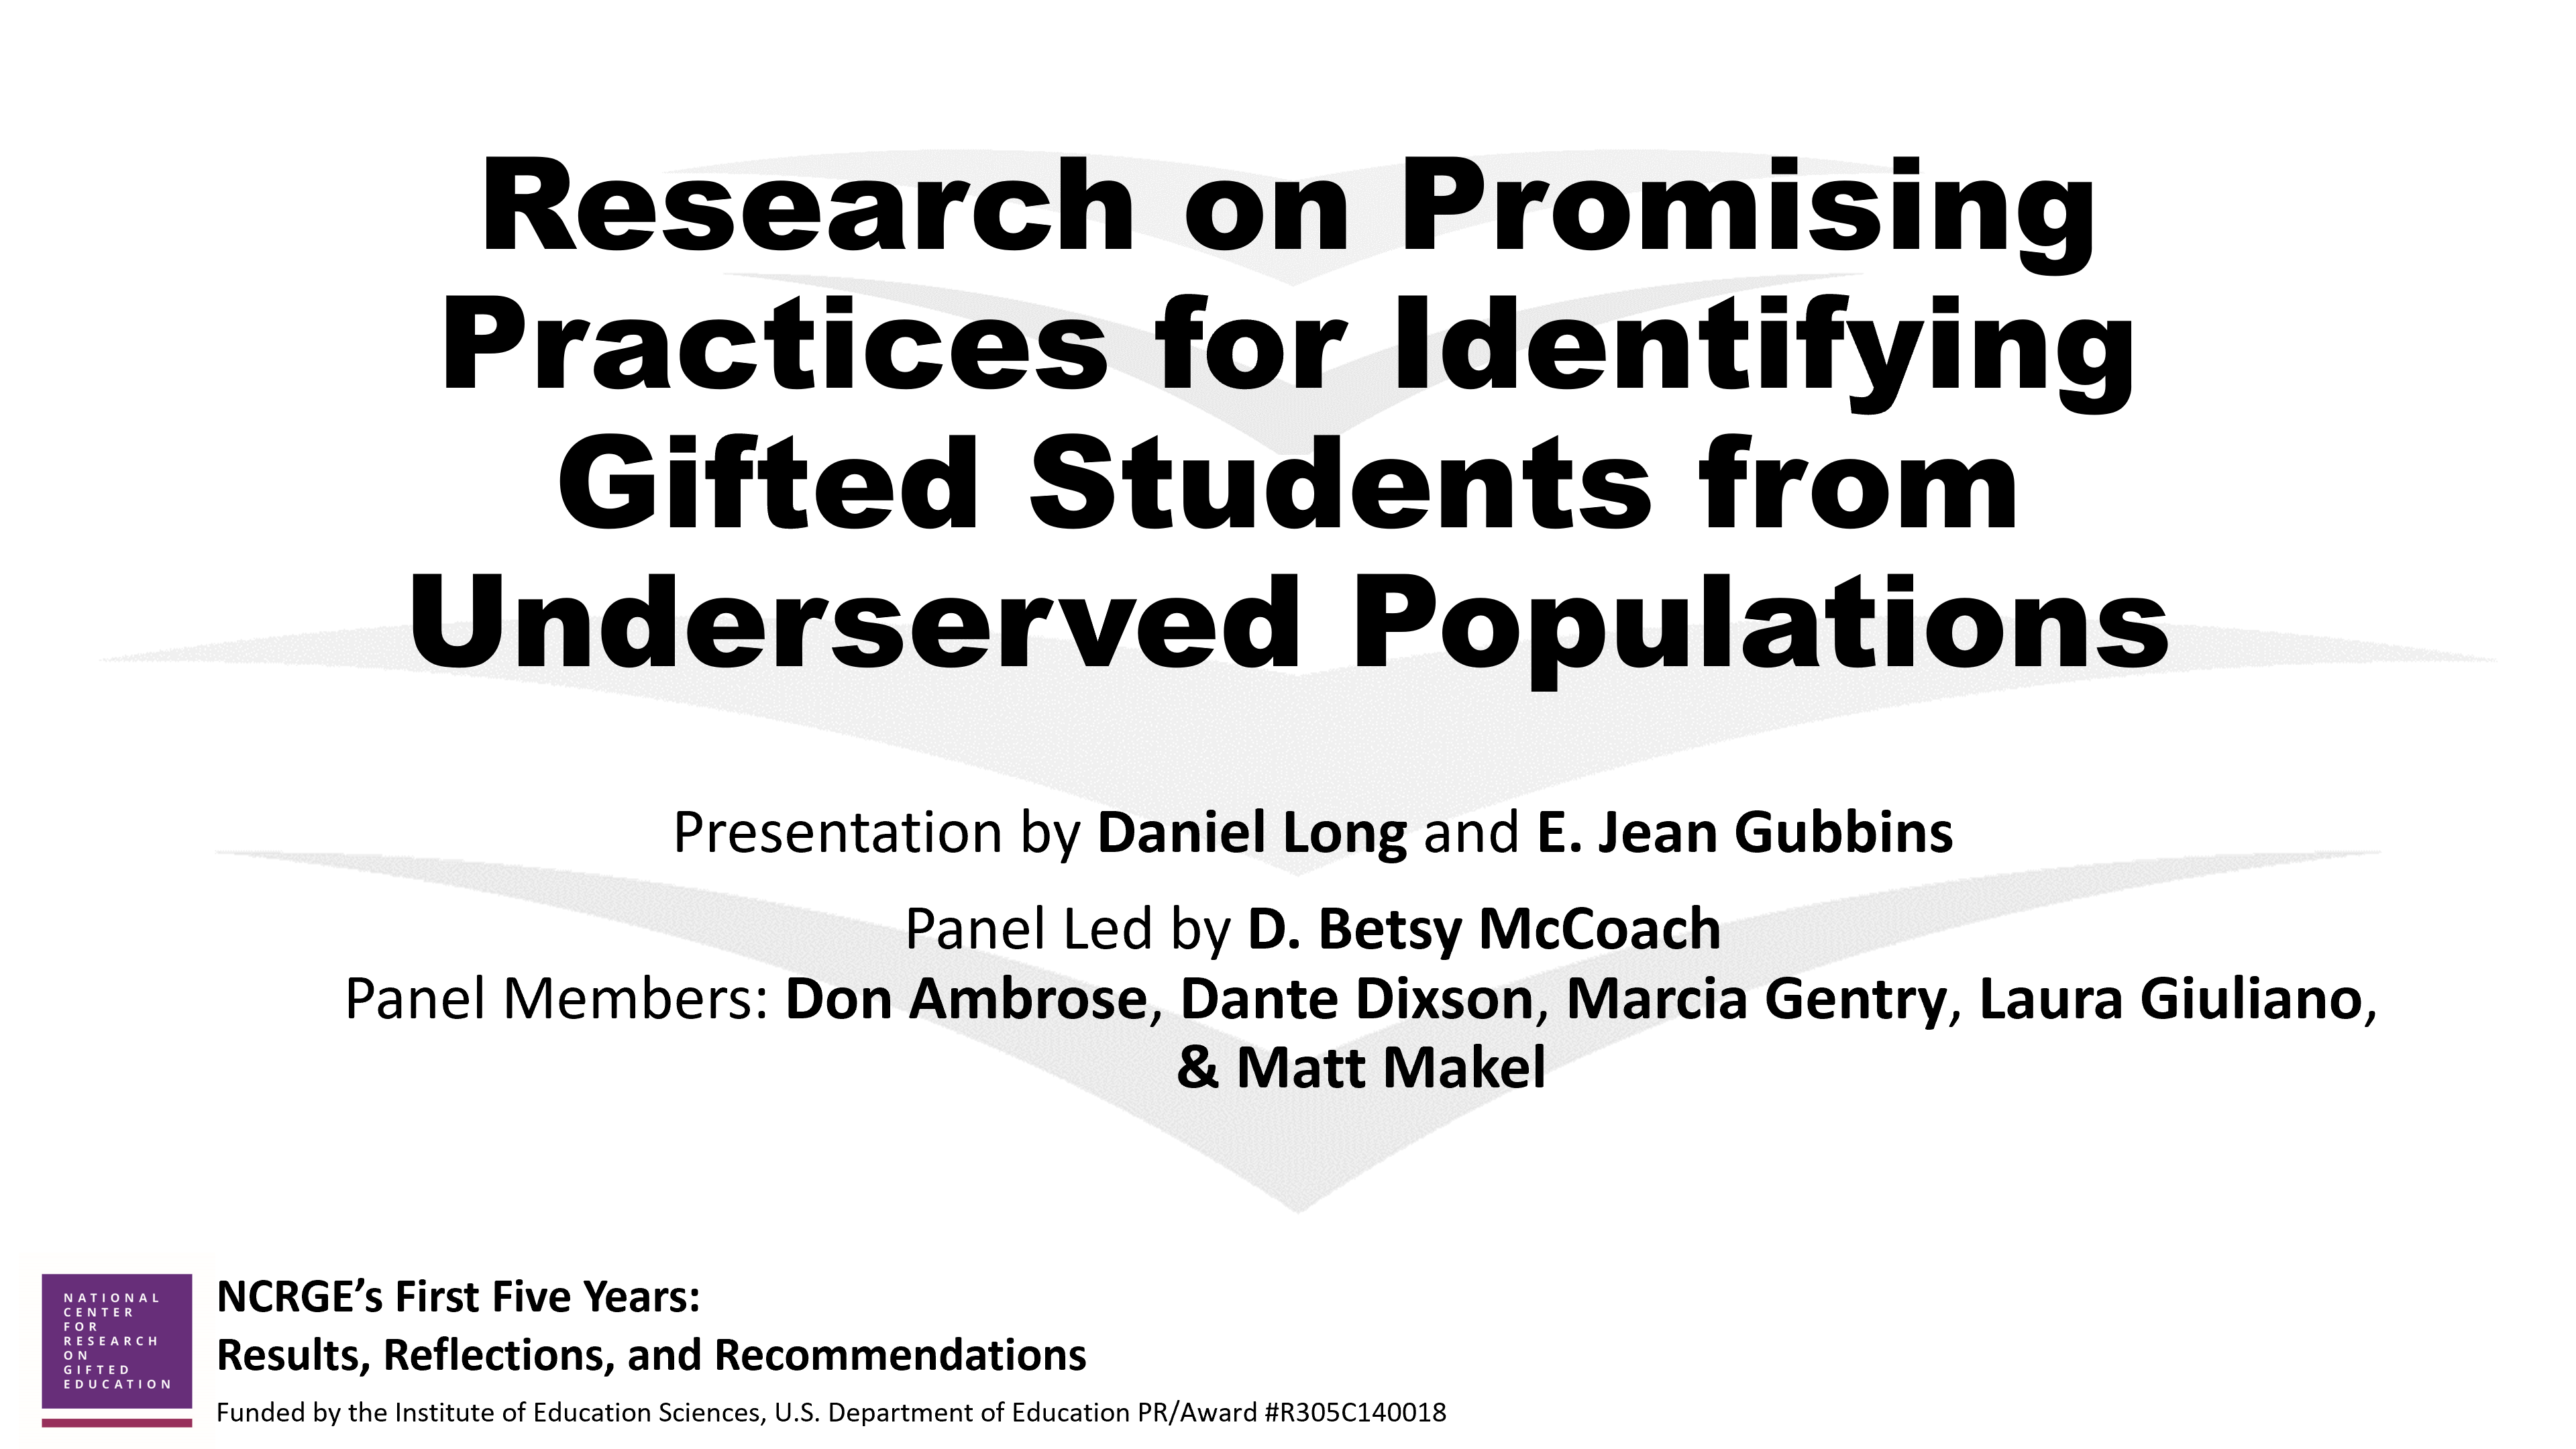 Research on Promising Practices